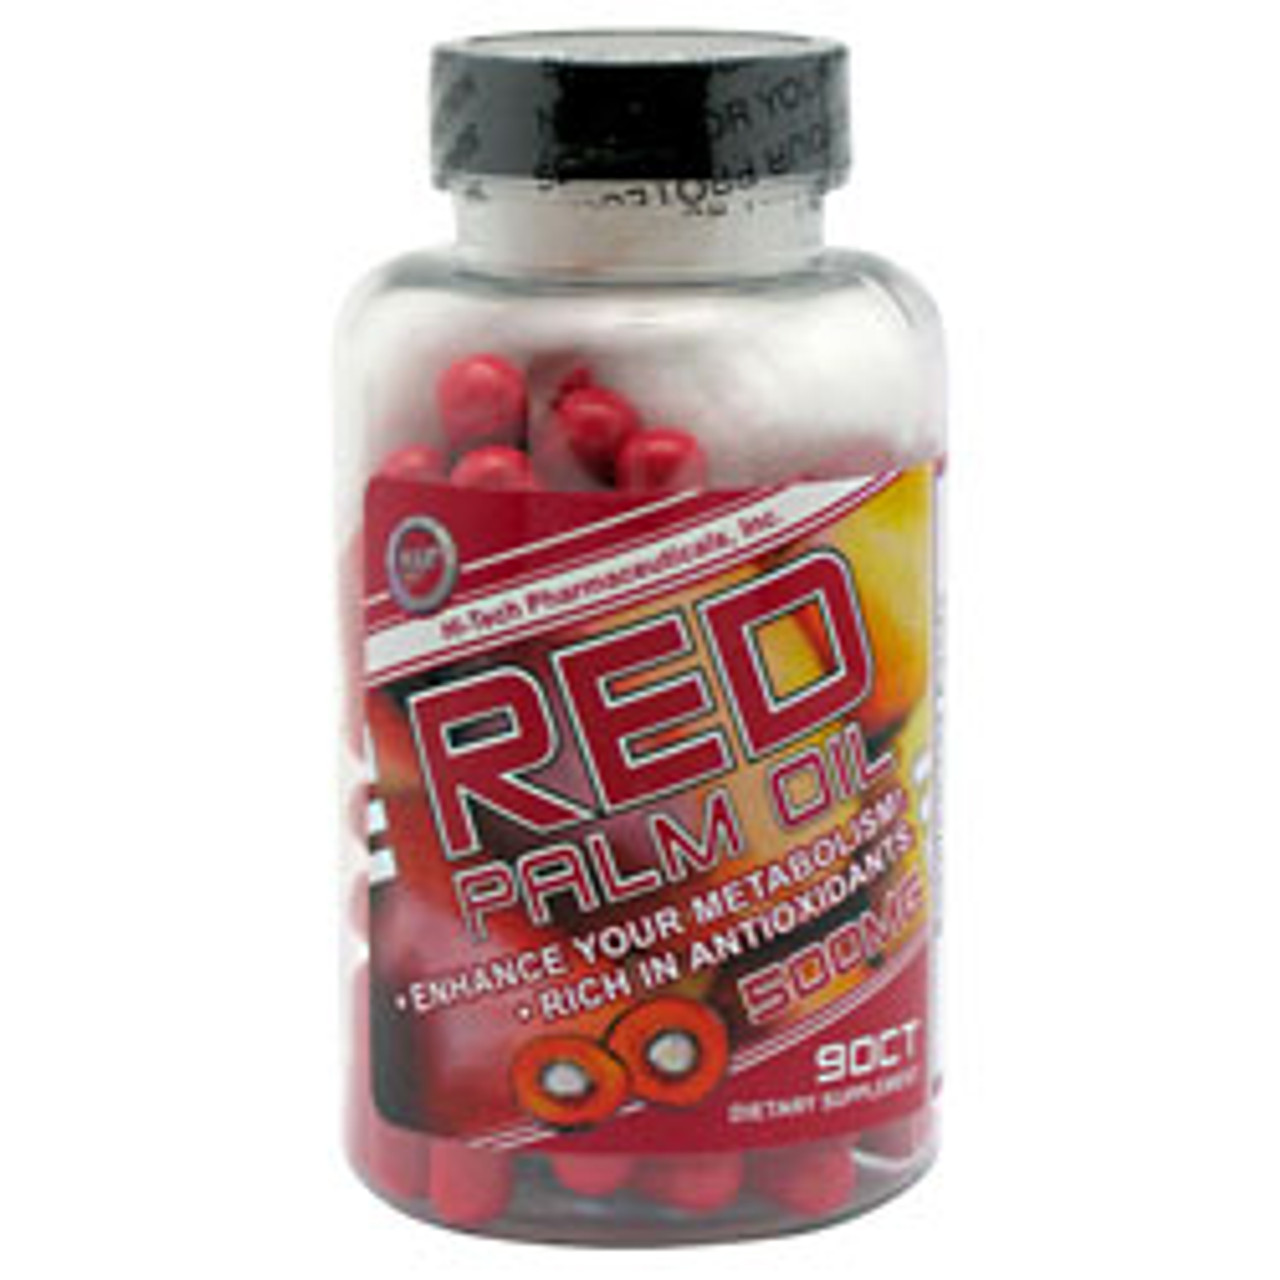 Red Palm Oil 90ct Hi-Tech